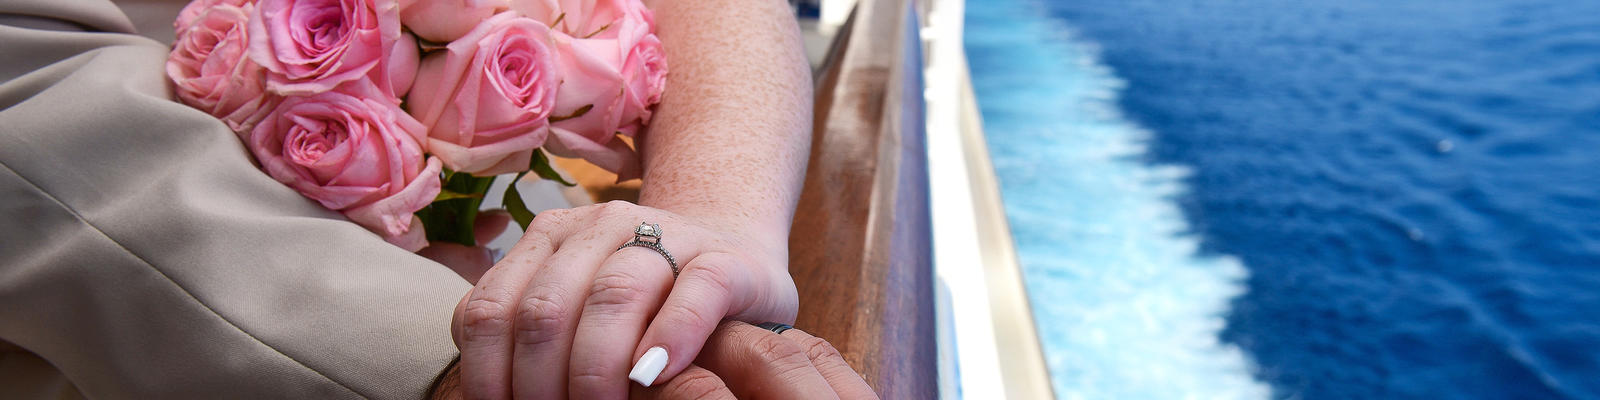 Renewing Your Vows At Sea (Photo: NVCstudio/Shutterstock)